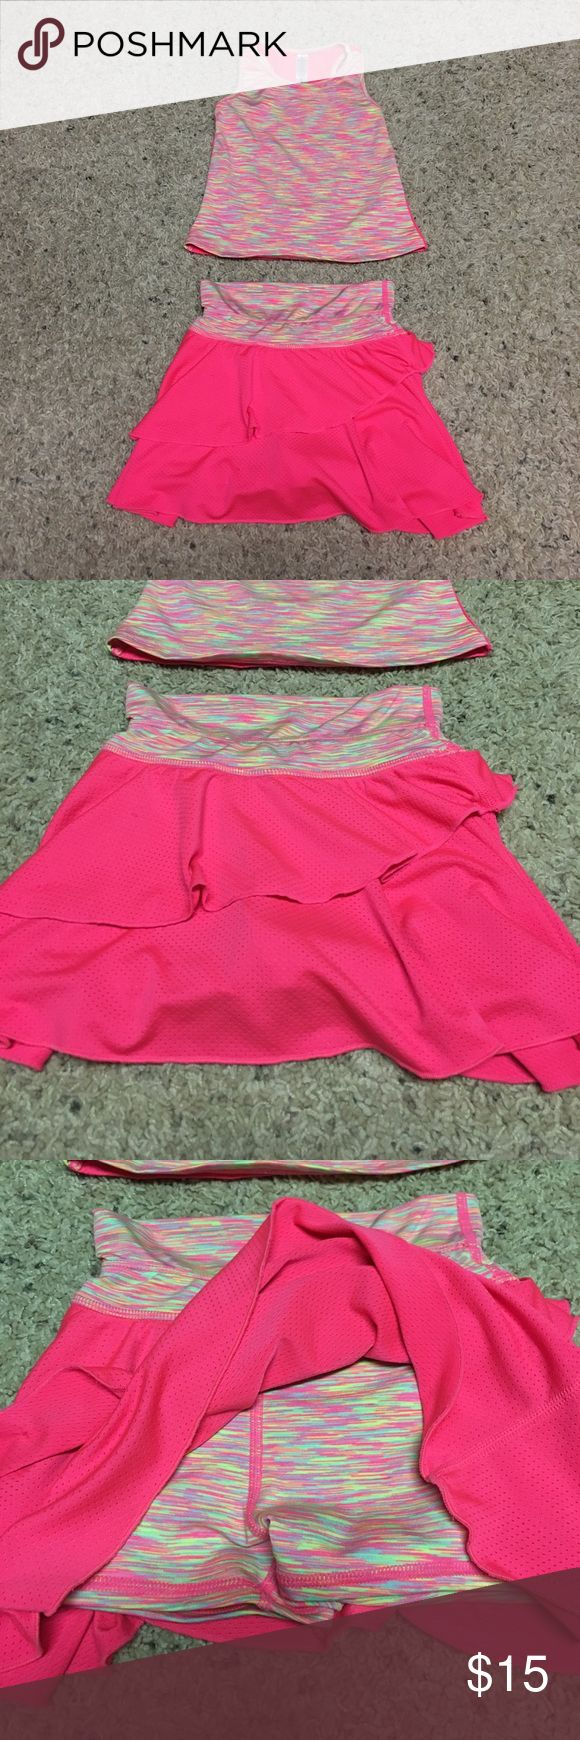 90 Degree by Reflex Baby 2pc skort set 3T Adorable hot pink skort with built in spandex shorts. Has 2 small ink spots on front that didn't come out in wash. Tank is multi-colored on front with neon yellow, pink, and orange that match skort material, has racer back with solid hot pink. Has small snag on back which is shown in picture. 90 Degree By Reflex Matching Sets